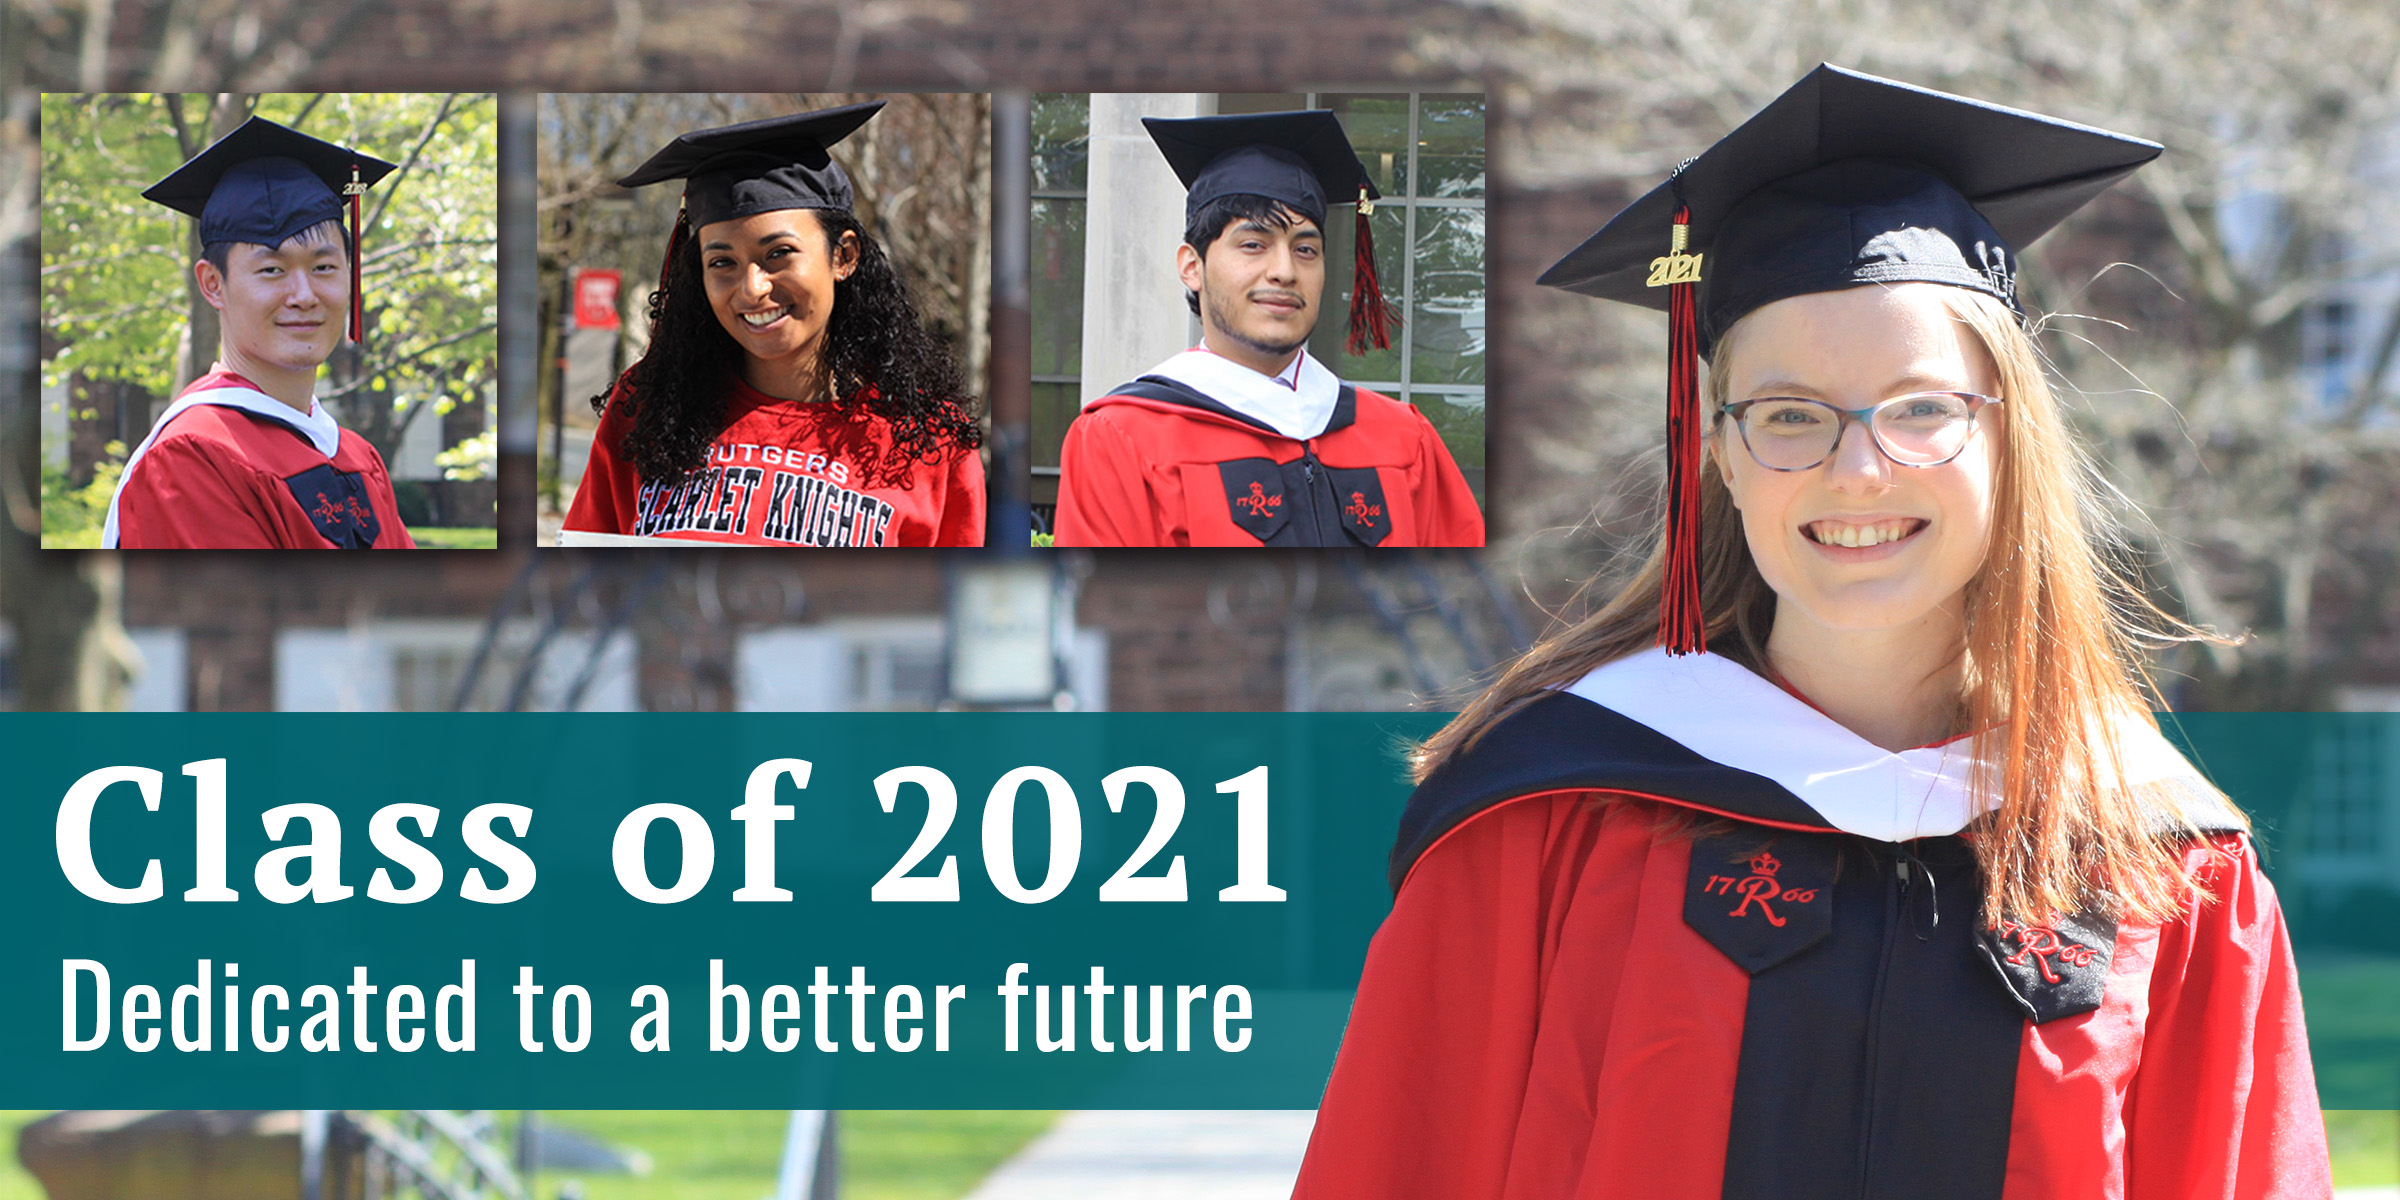 Class of 2021: Dedicated to a better future